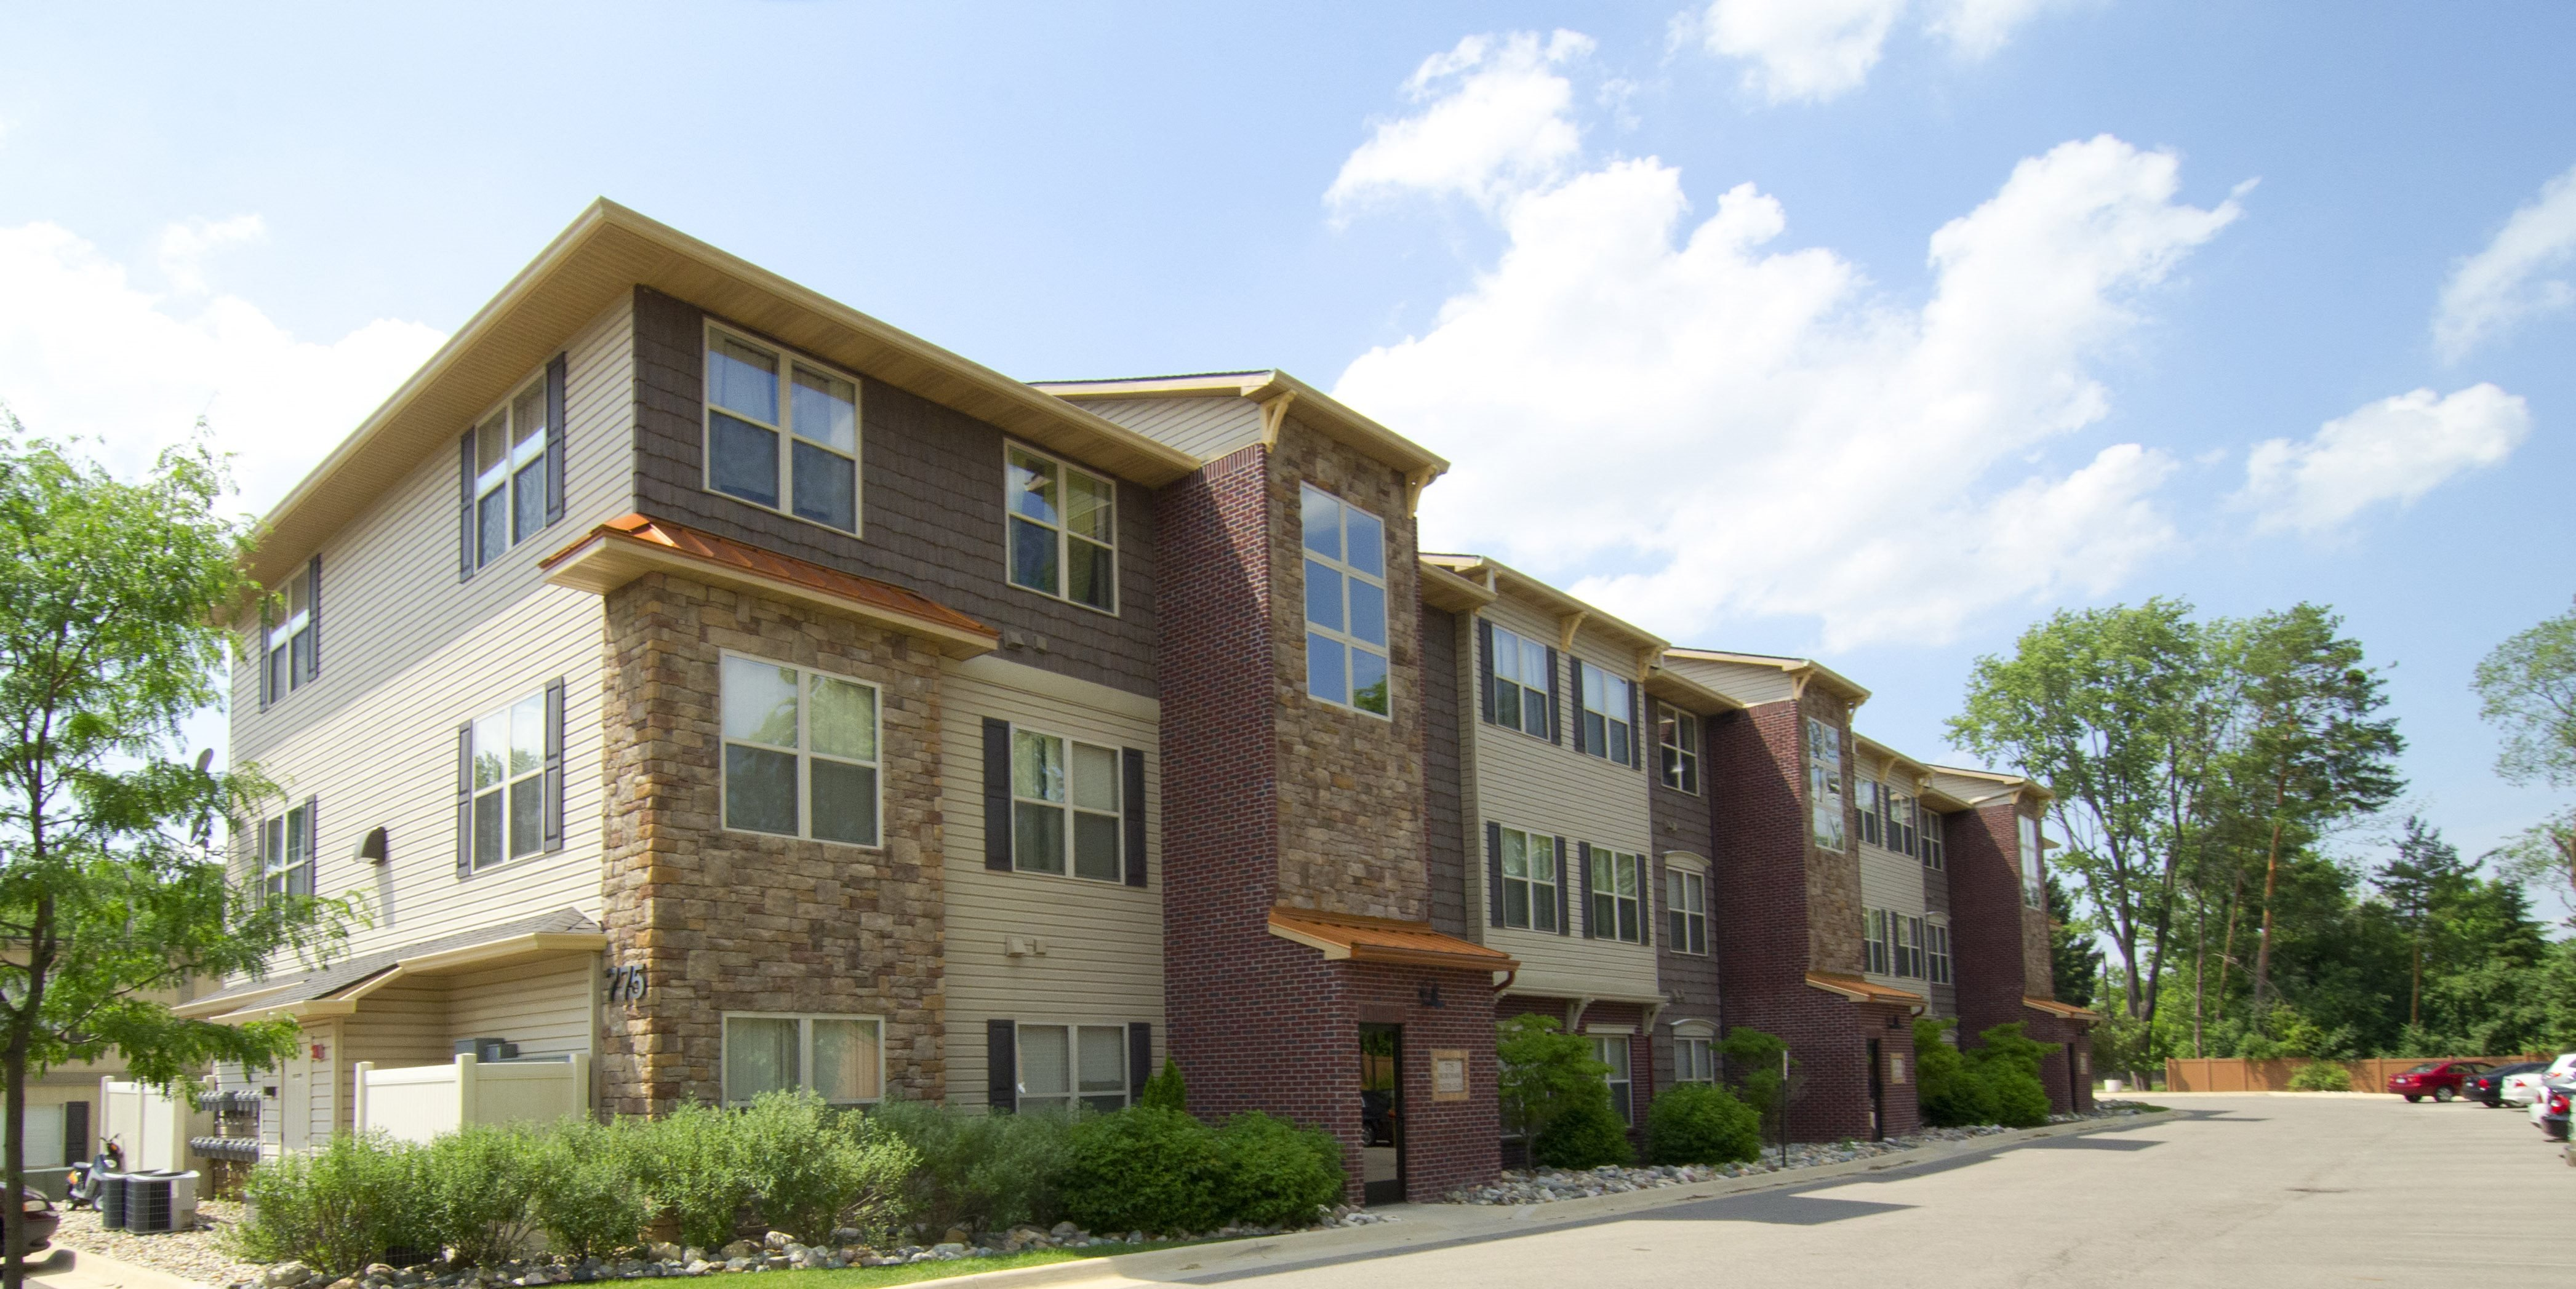 Burcham place apartments apartments in east lansing mi - 3 bedroom apartments east lansing mi ...